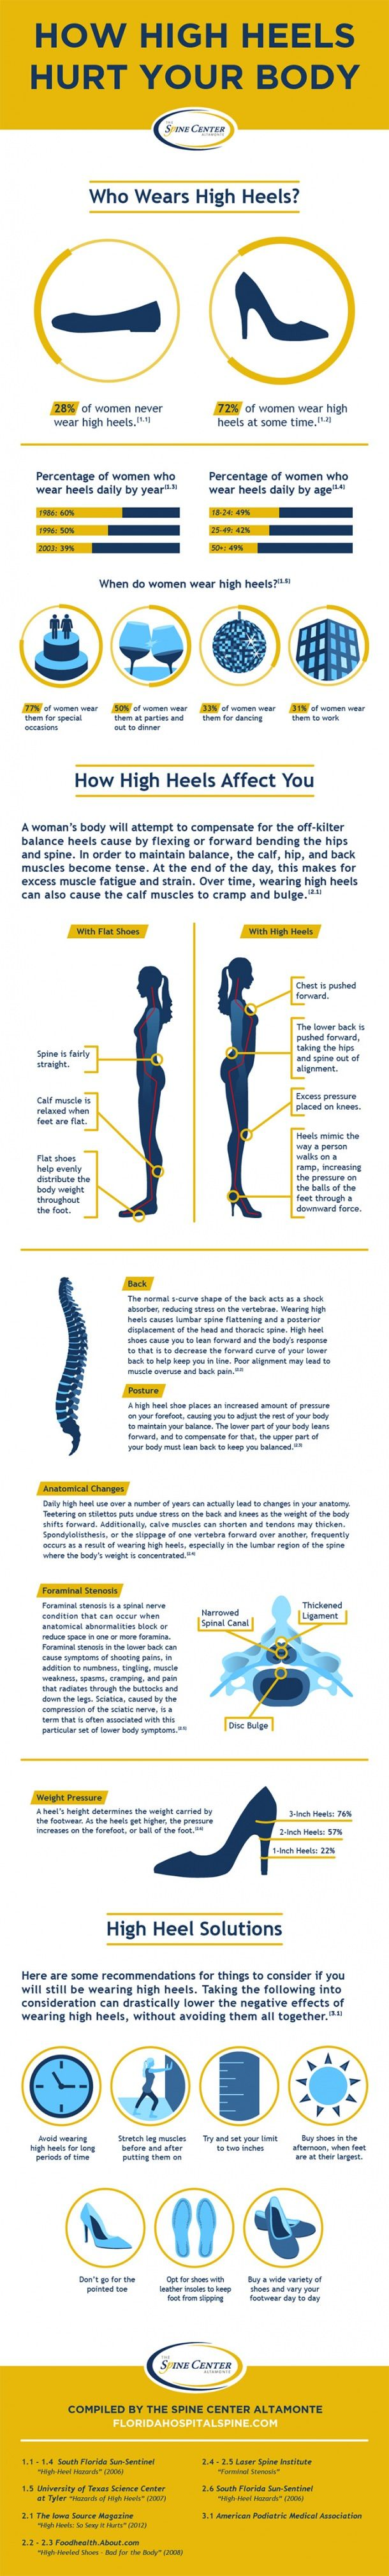 How High Heels Hurt Your Body  Good to know & remember ladies, it's fun every now and then. But I'll still wear them sparingly.